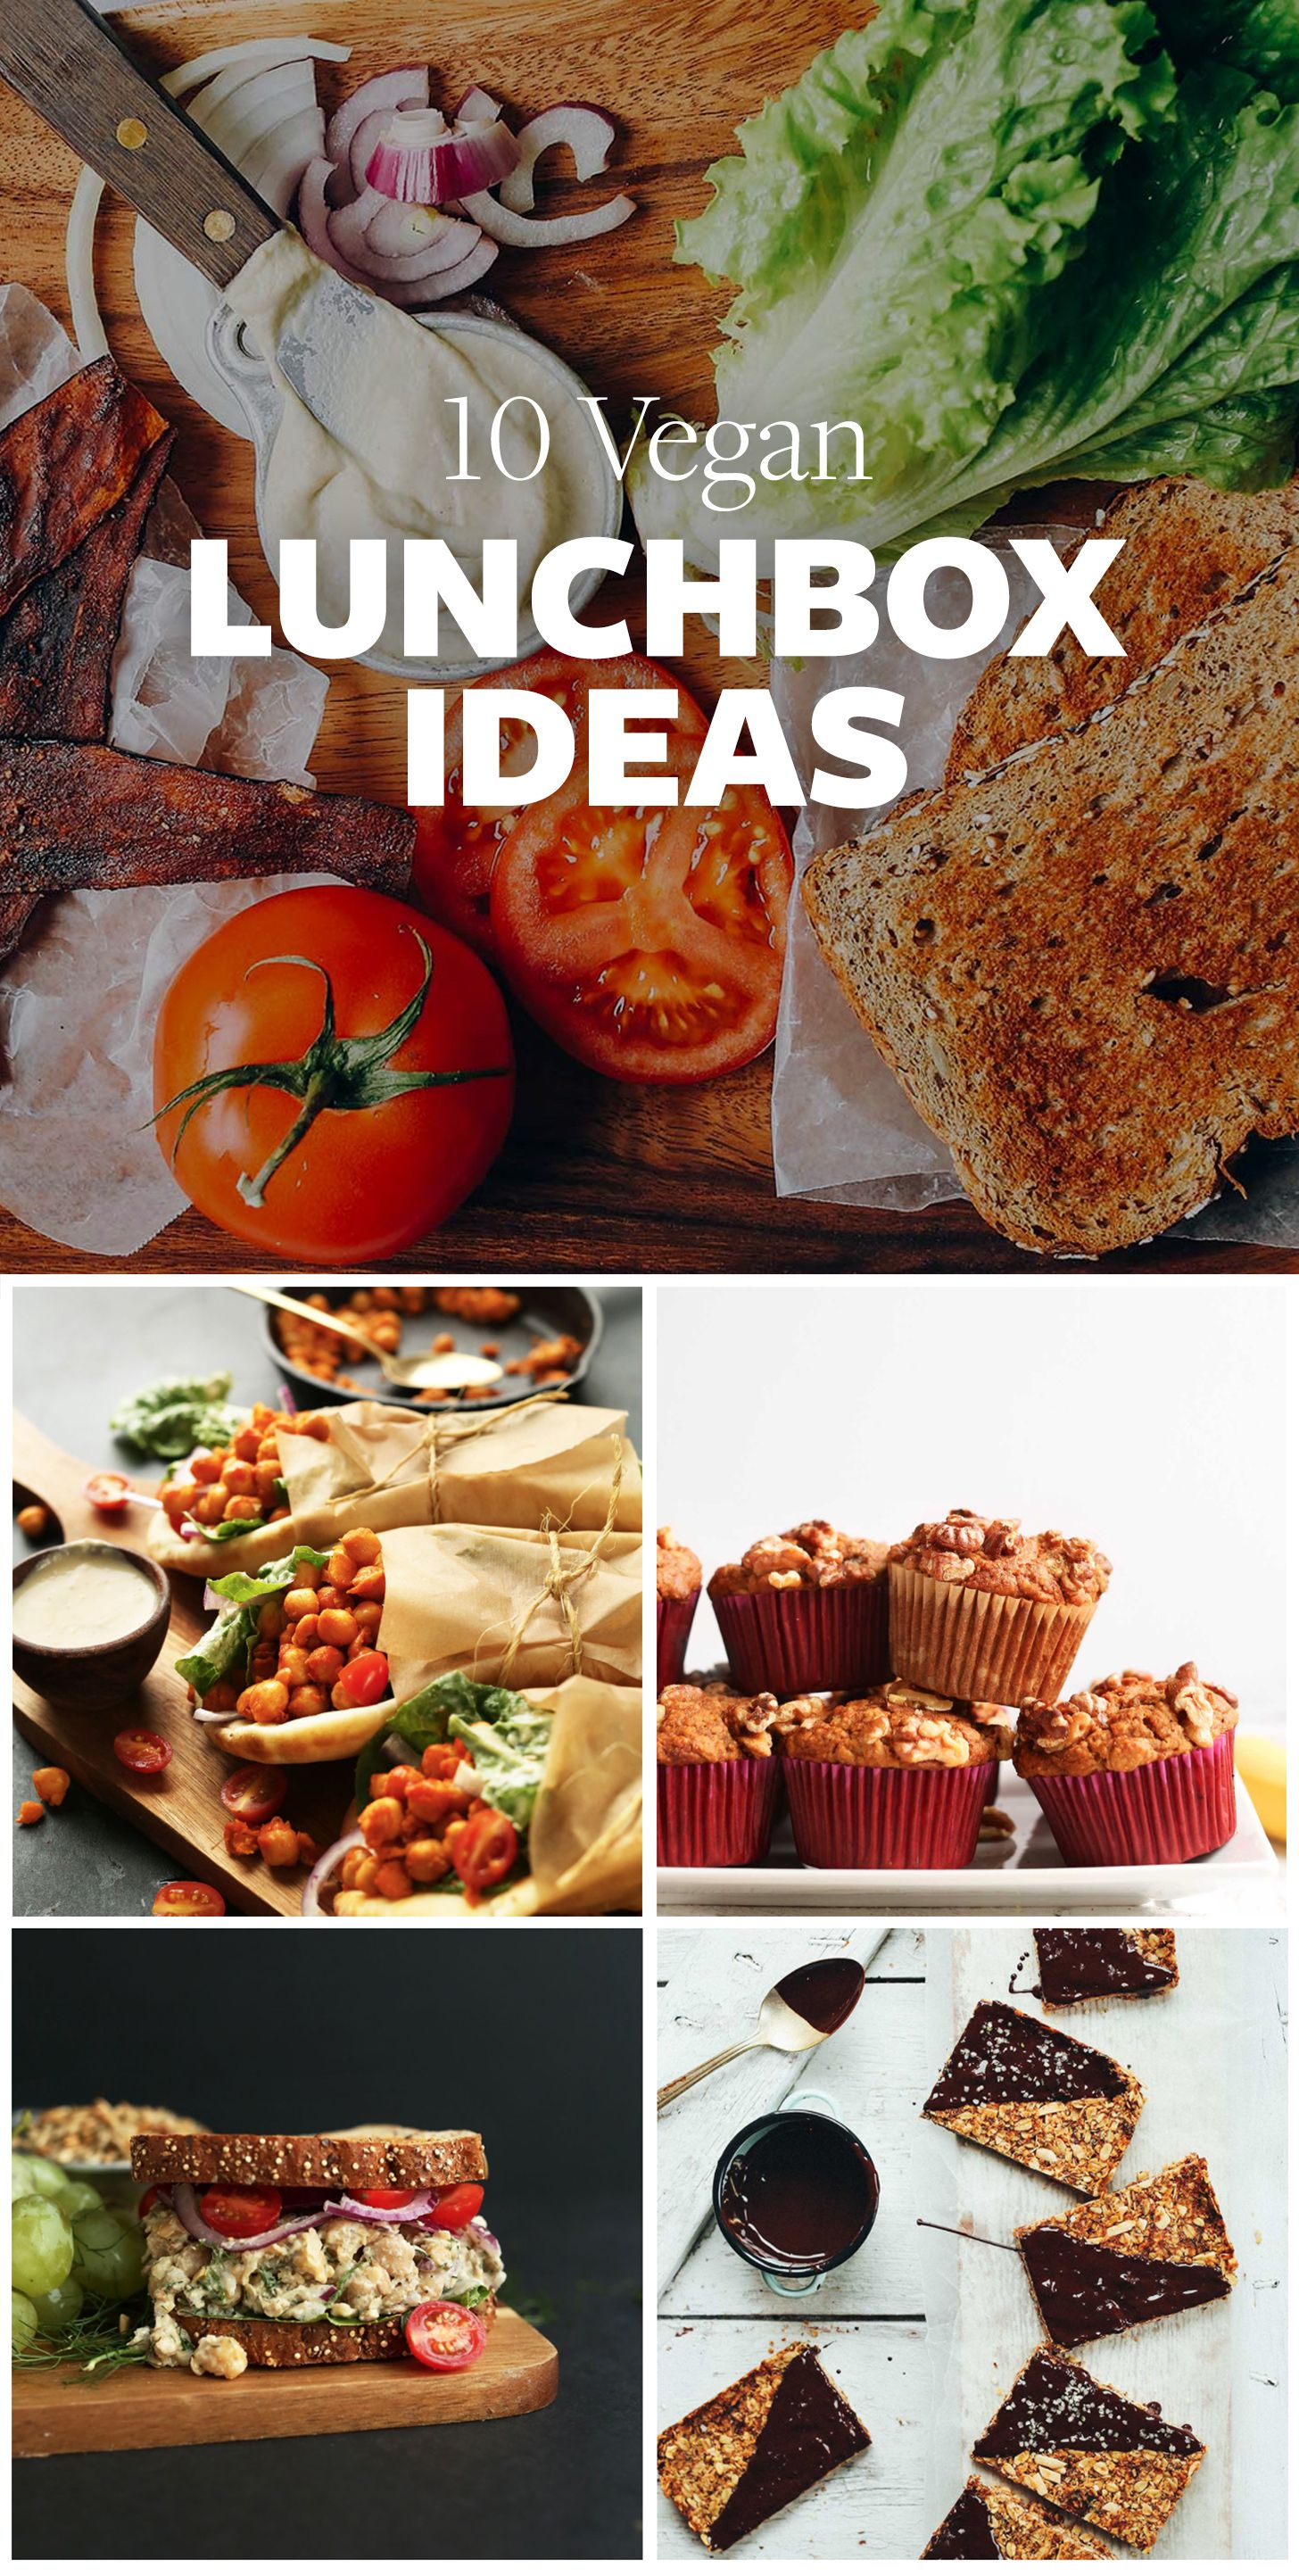 10 Vegan Lunchbox Ideas My Kitchen Creations Vegan Lunch